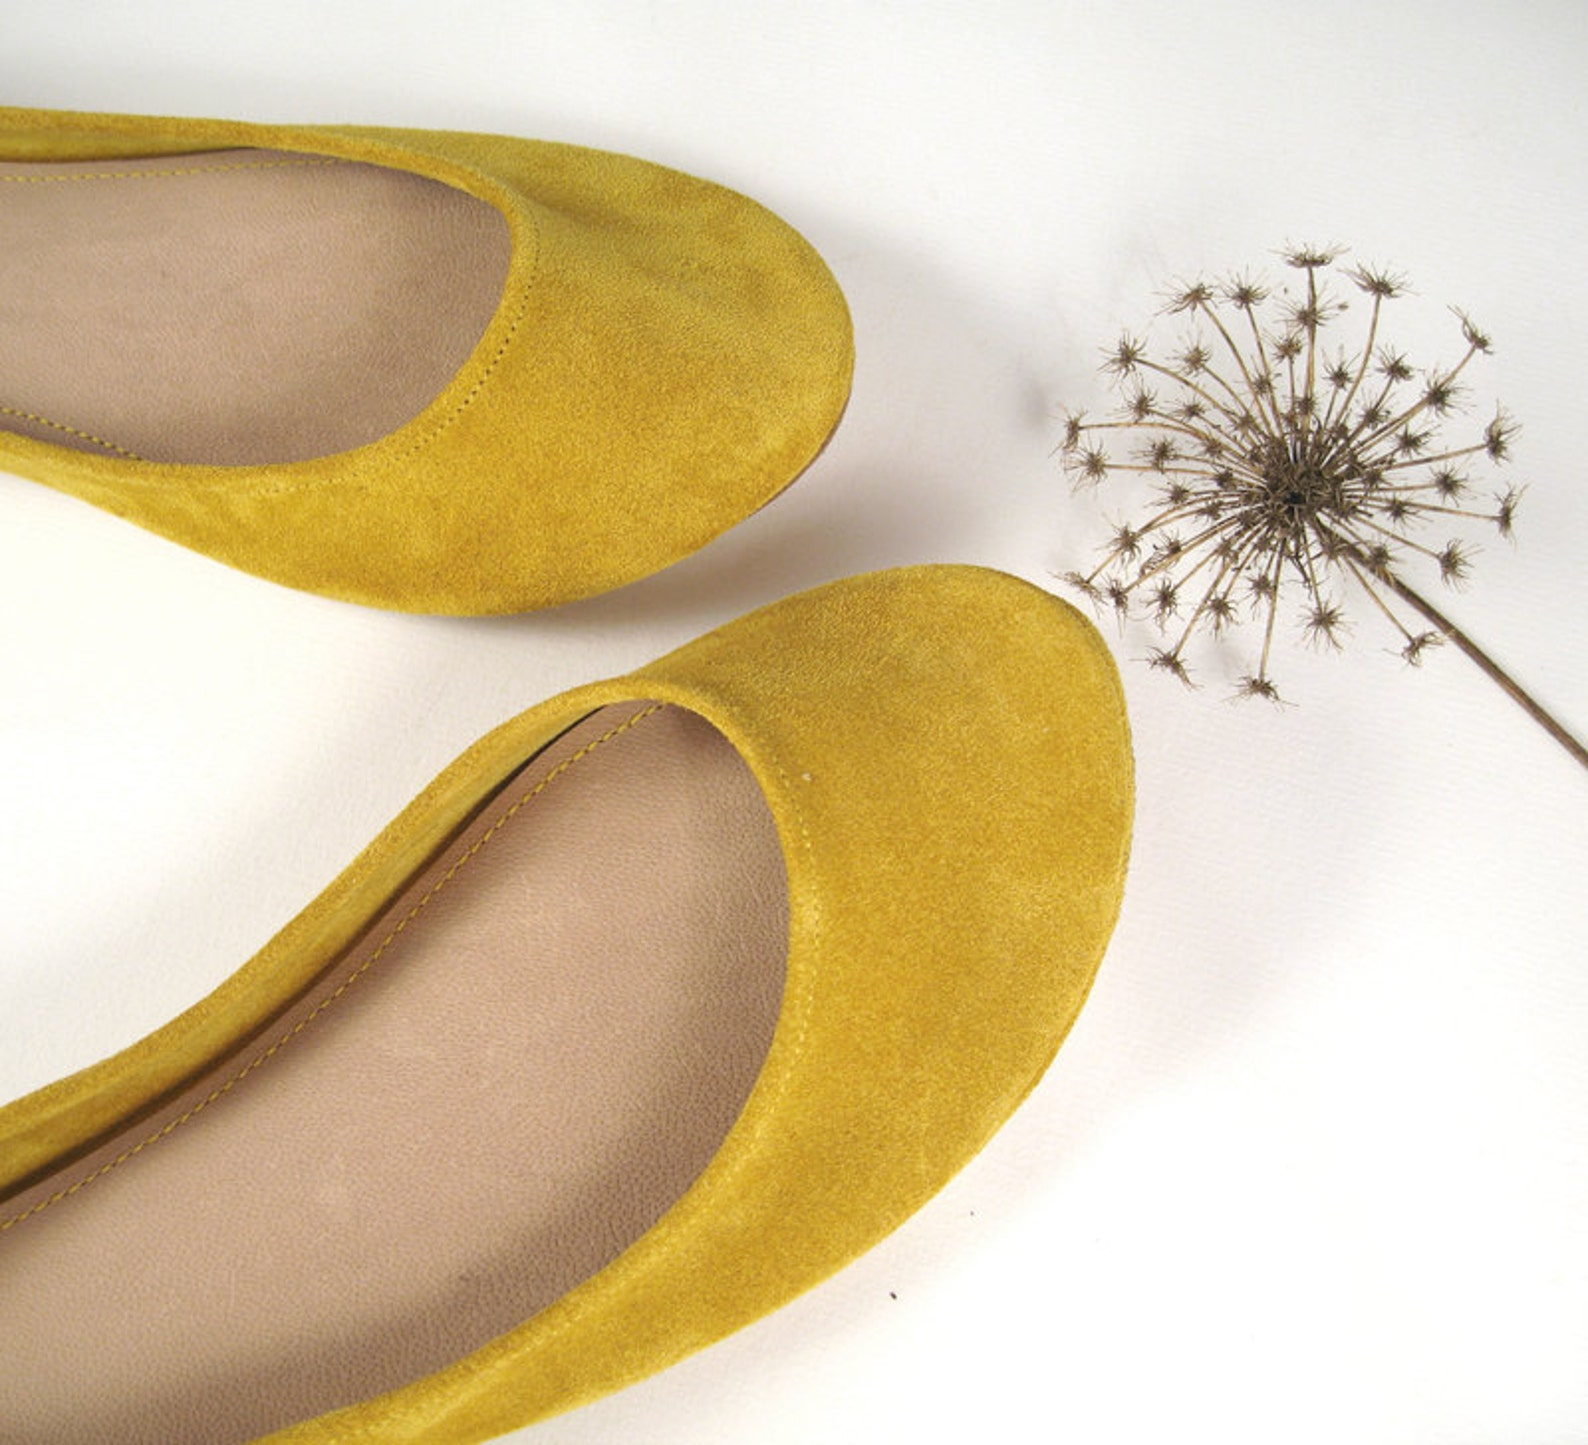 bridal shoes. wedding shoes. bride ballet flats. low heel flat. leather ballet flats. gift for her. personalized gift. yellow ha